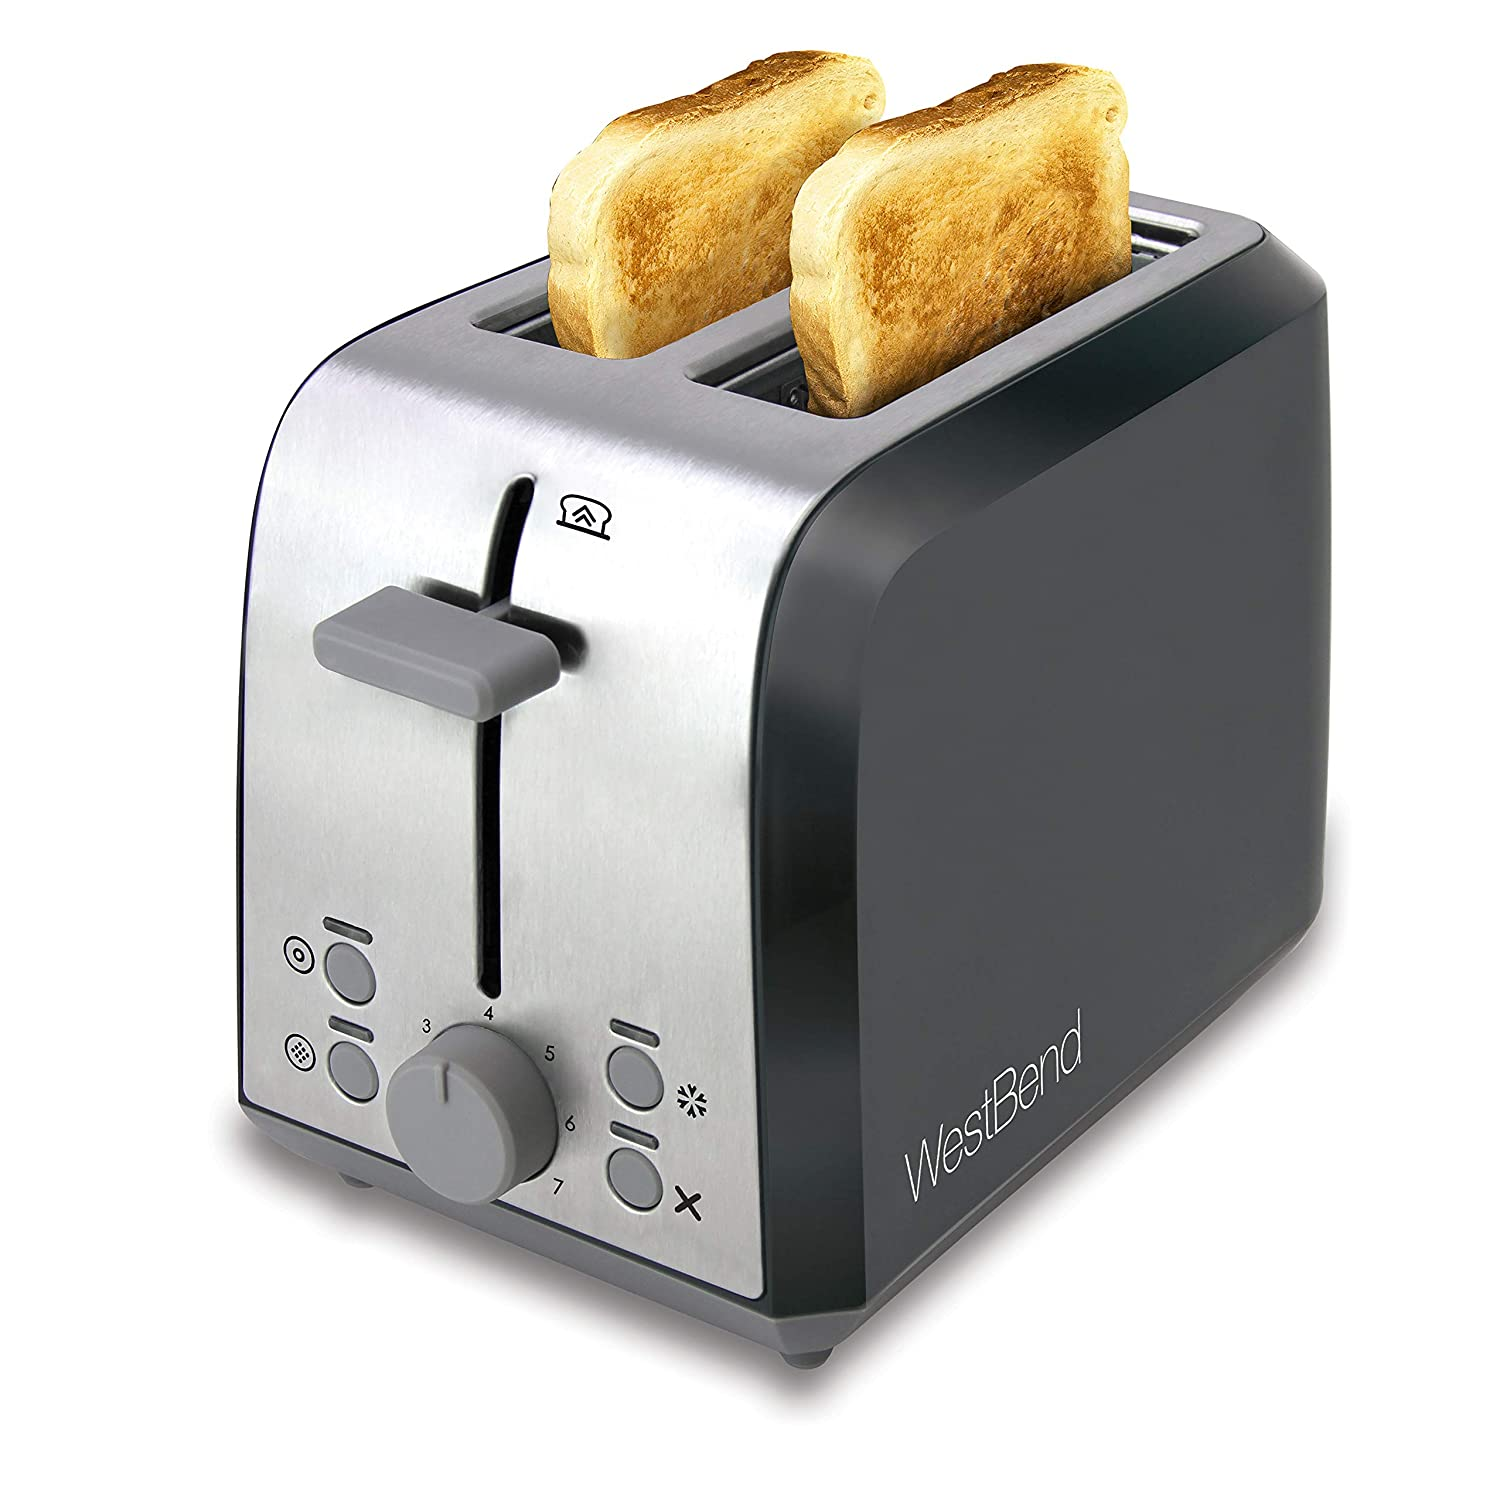 West Bend 78823 Extra Wide Slot Toaster with Bagel Settings Ultimate Toast Lift and Removable Crumb Tray, 1, Metallic